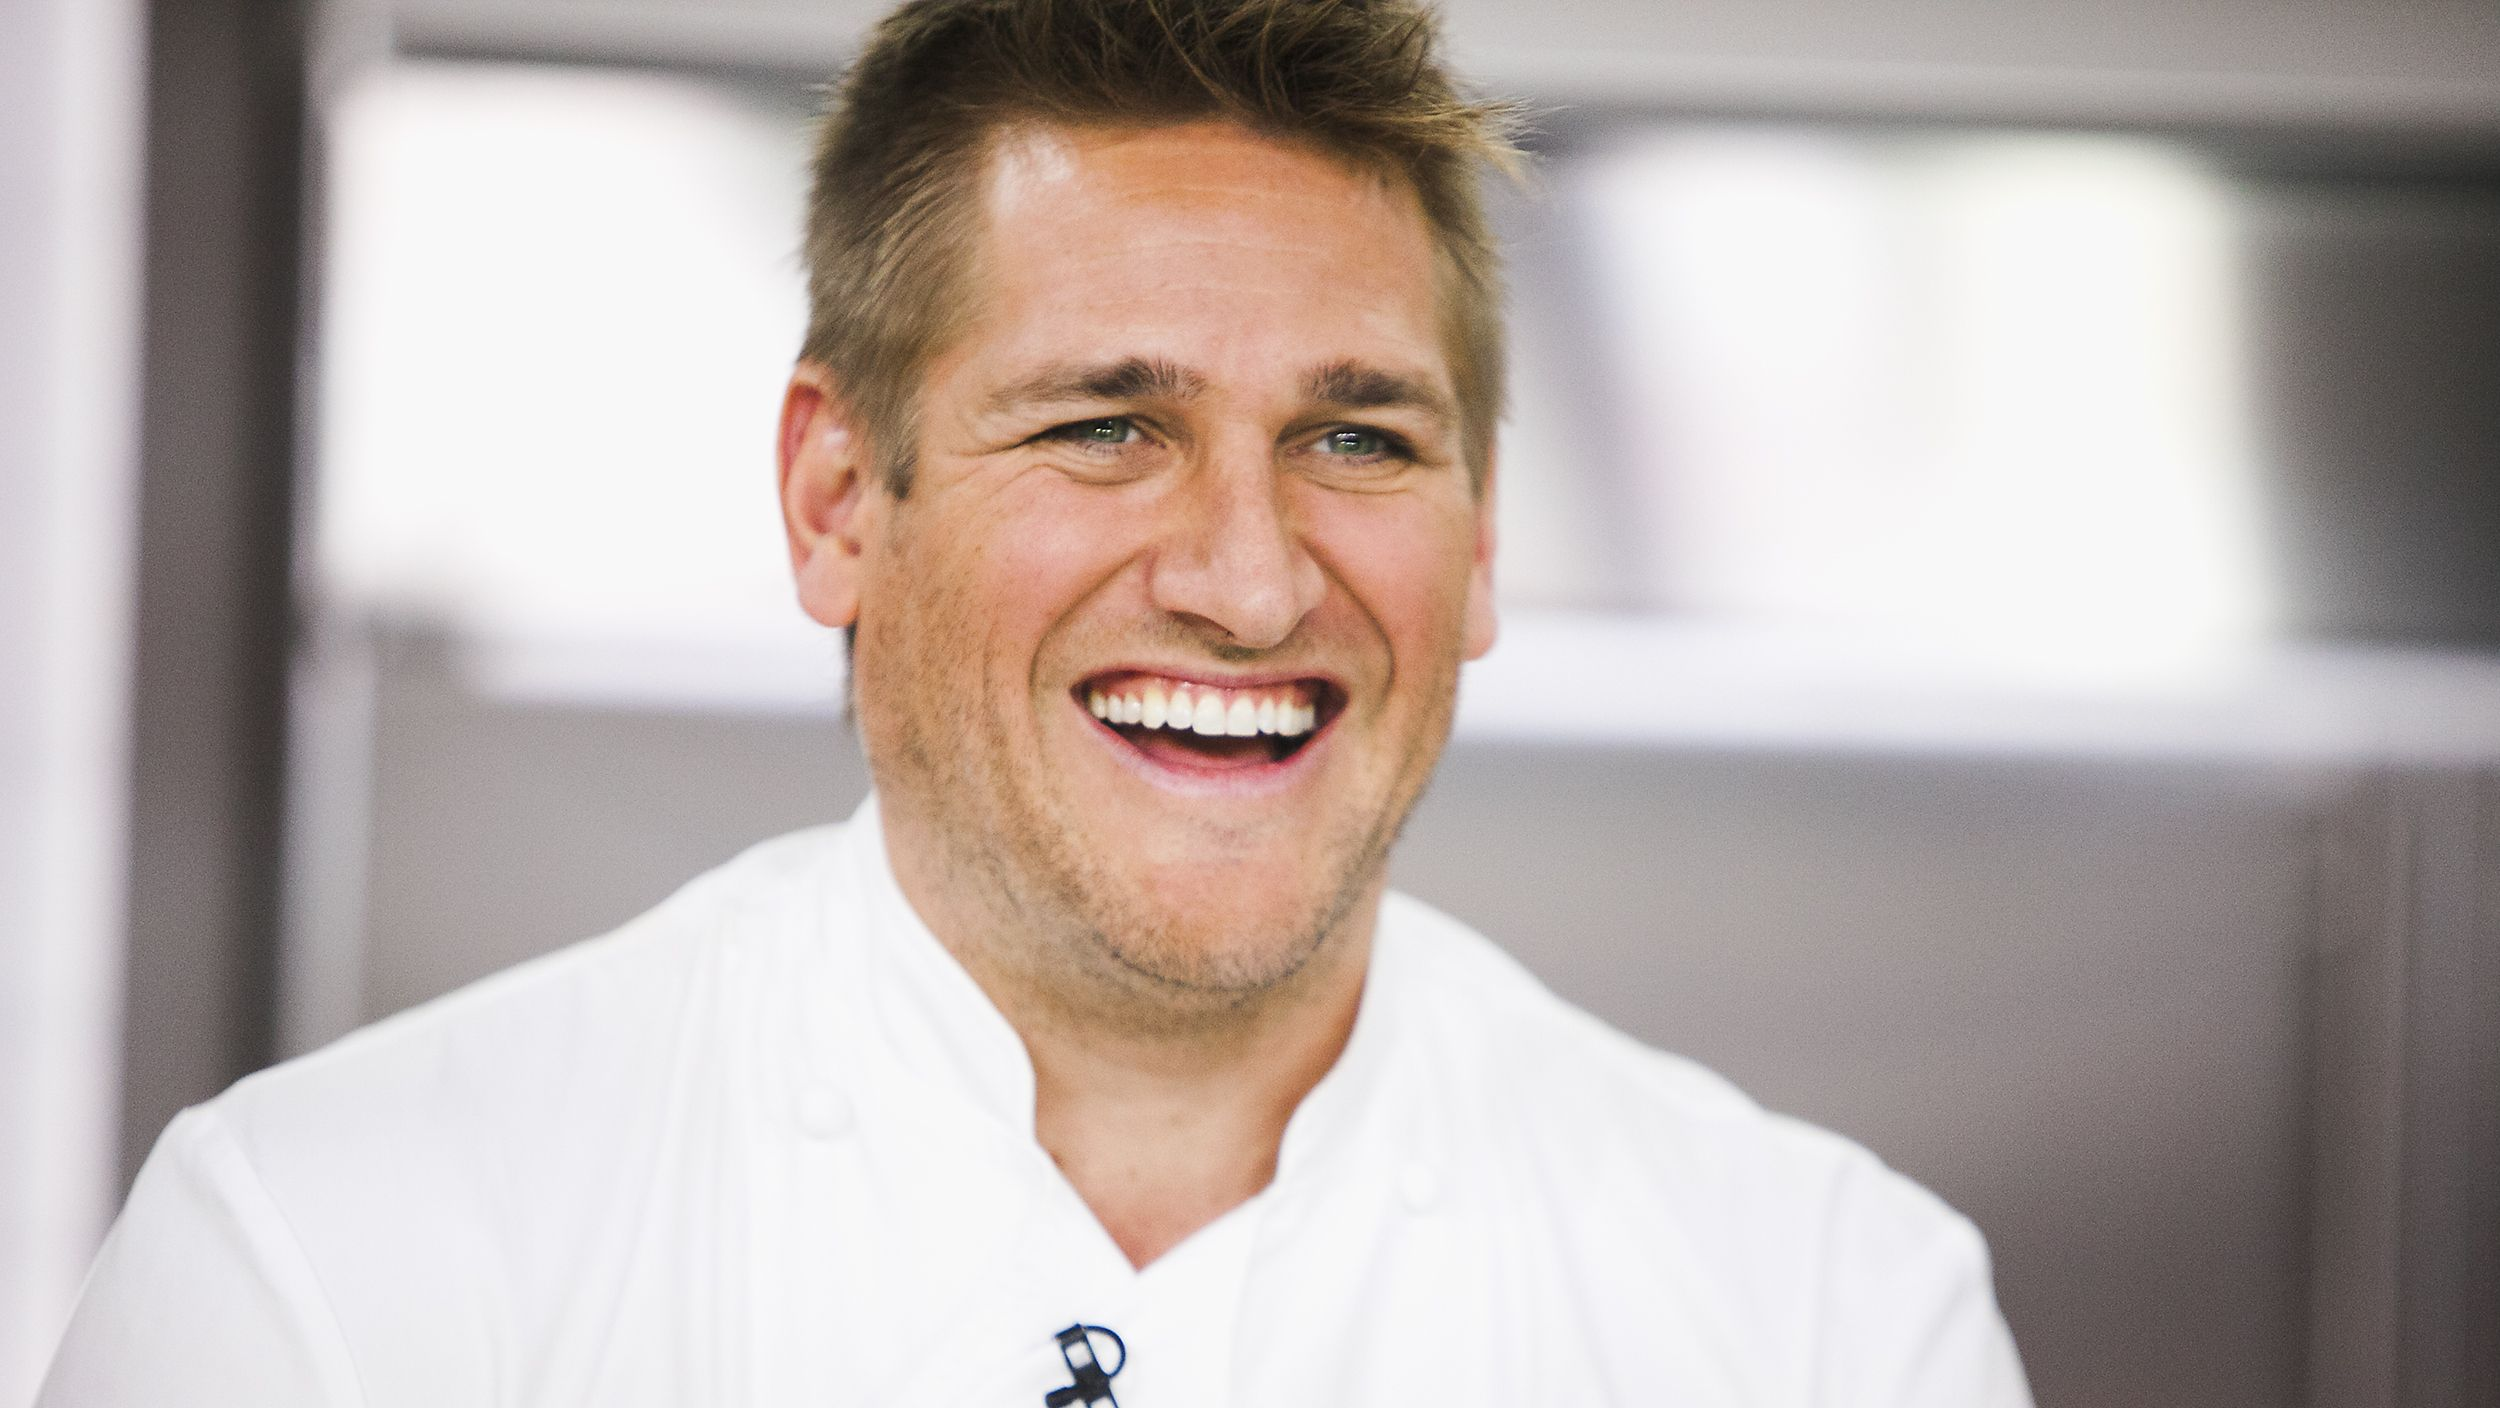 curtis stone urban farmer